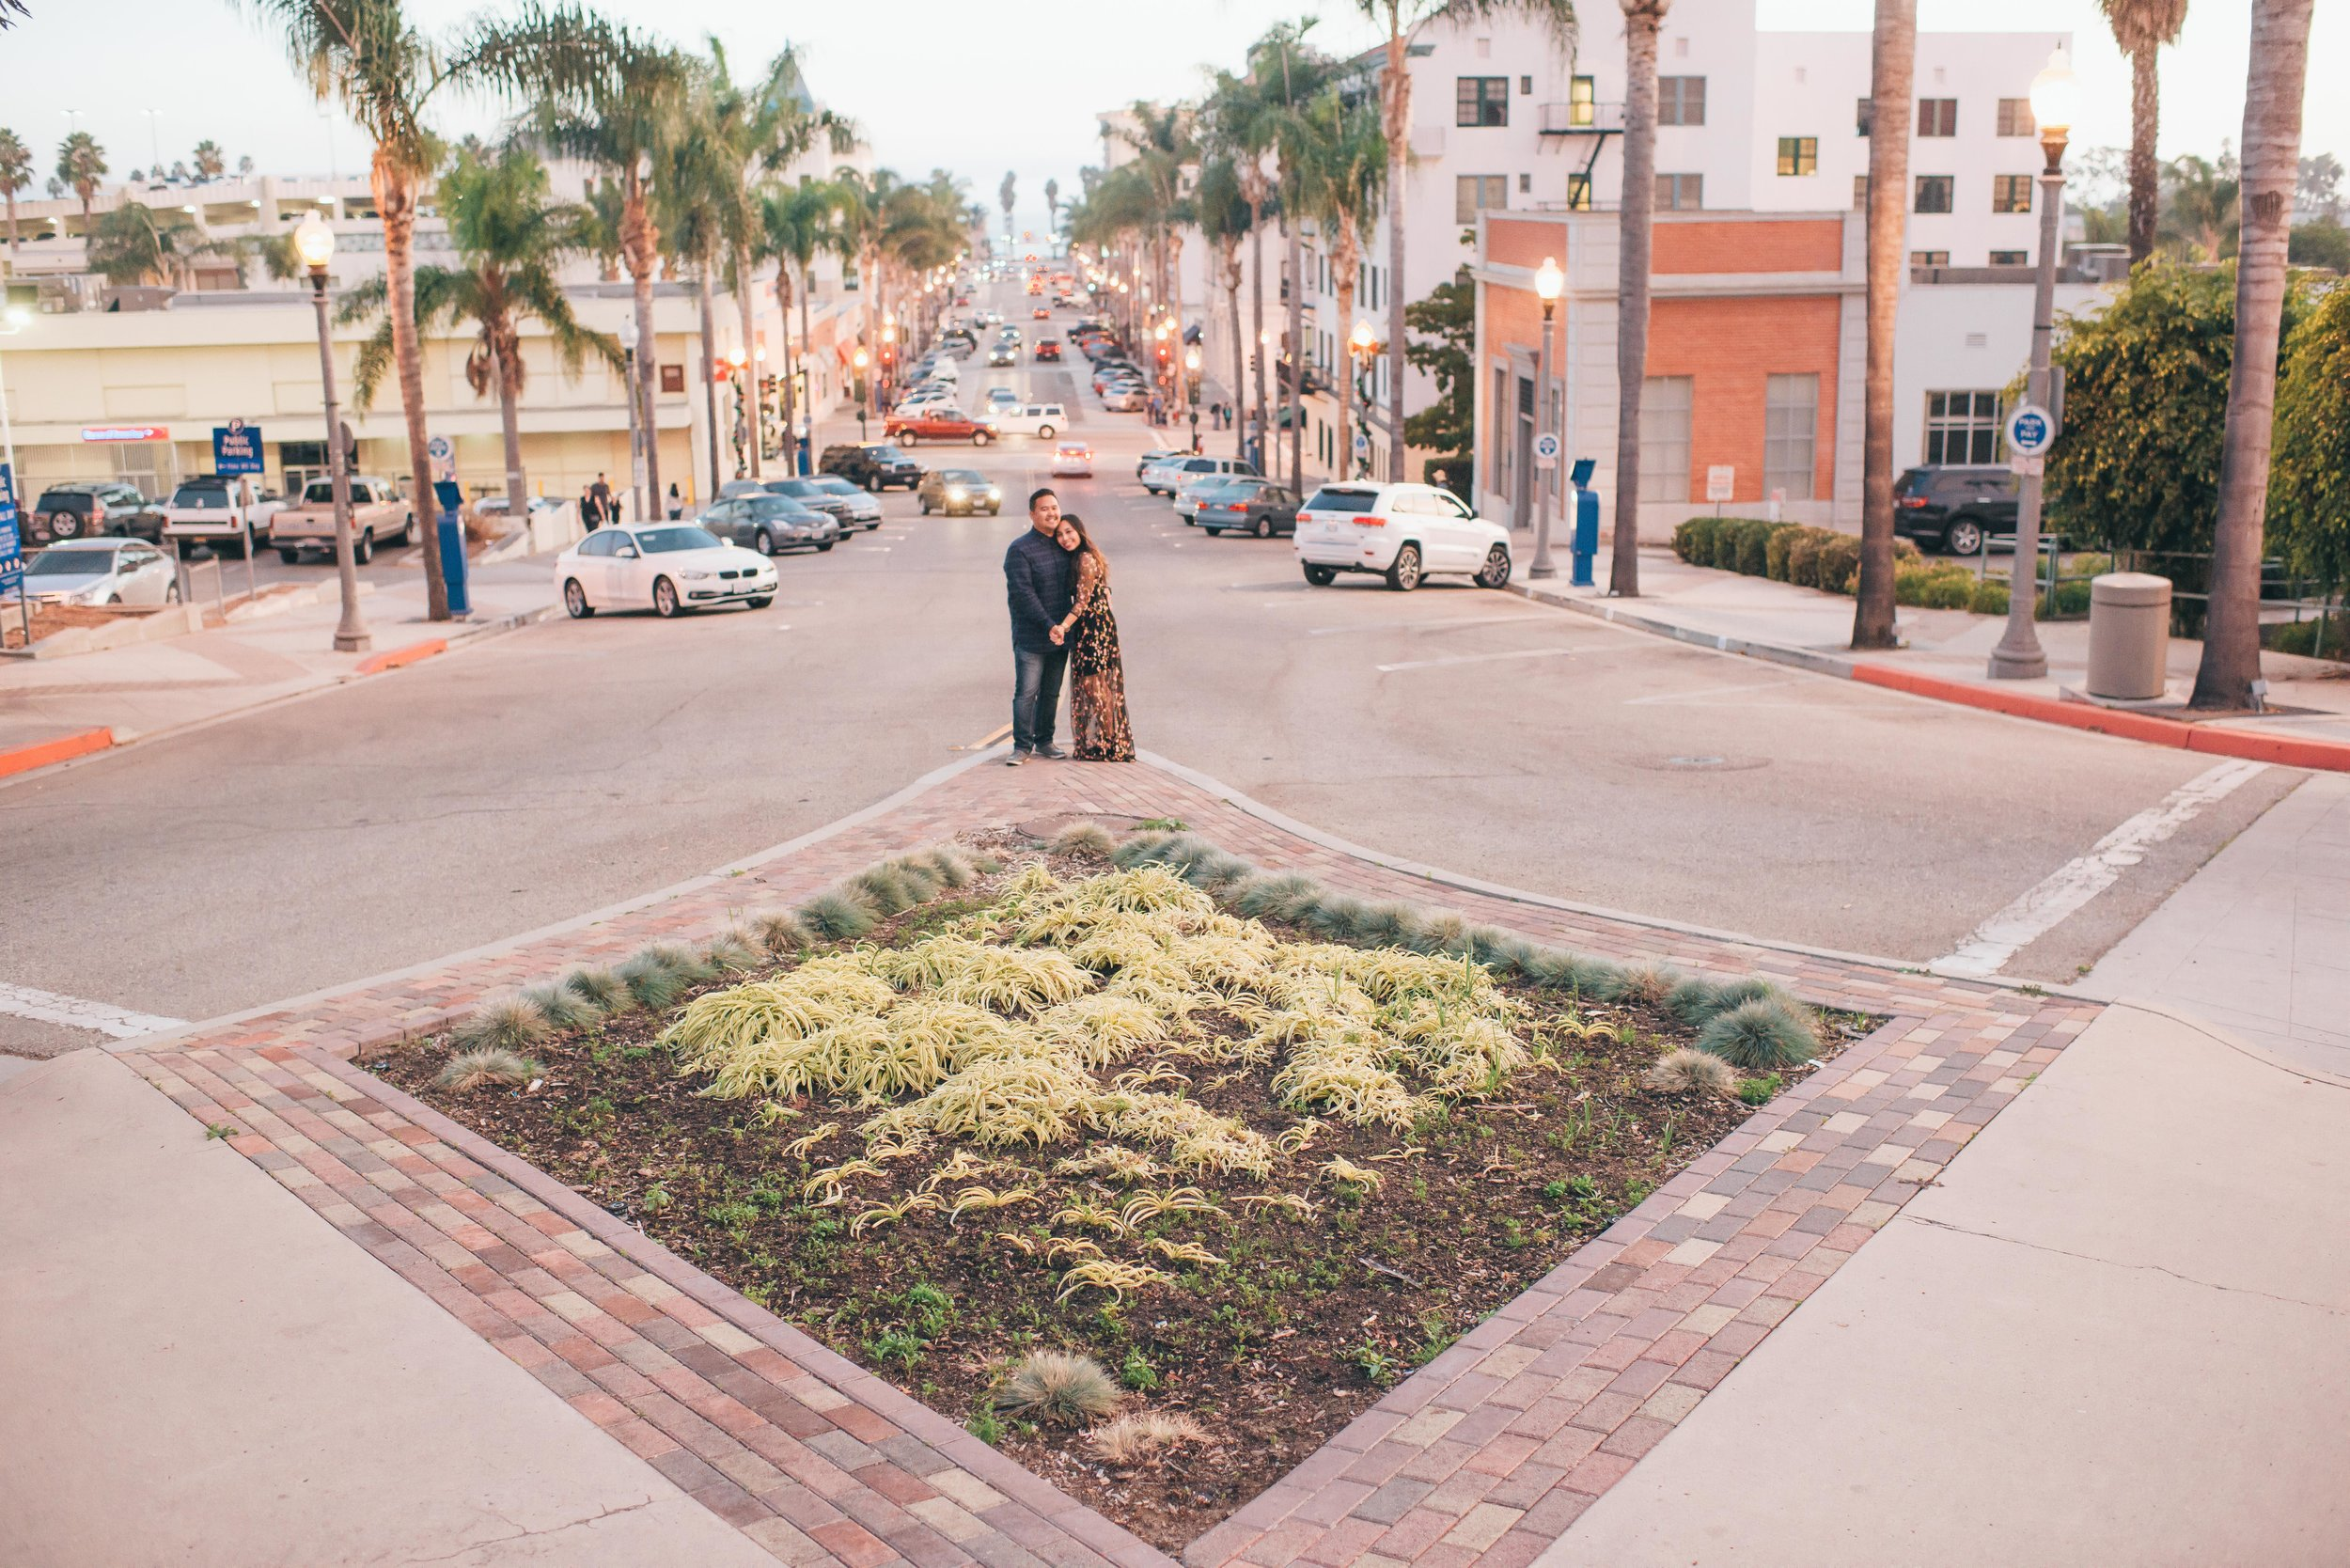 Santa Barbara Wedding Photographer, Elopement Photographer, Engagement Photographer, Los Angeles Wedding Photographer, Palm Springs Wedding Photographer, Joshua Tree Wedding Photographer